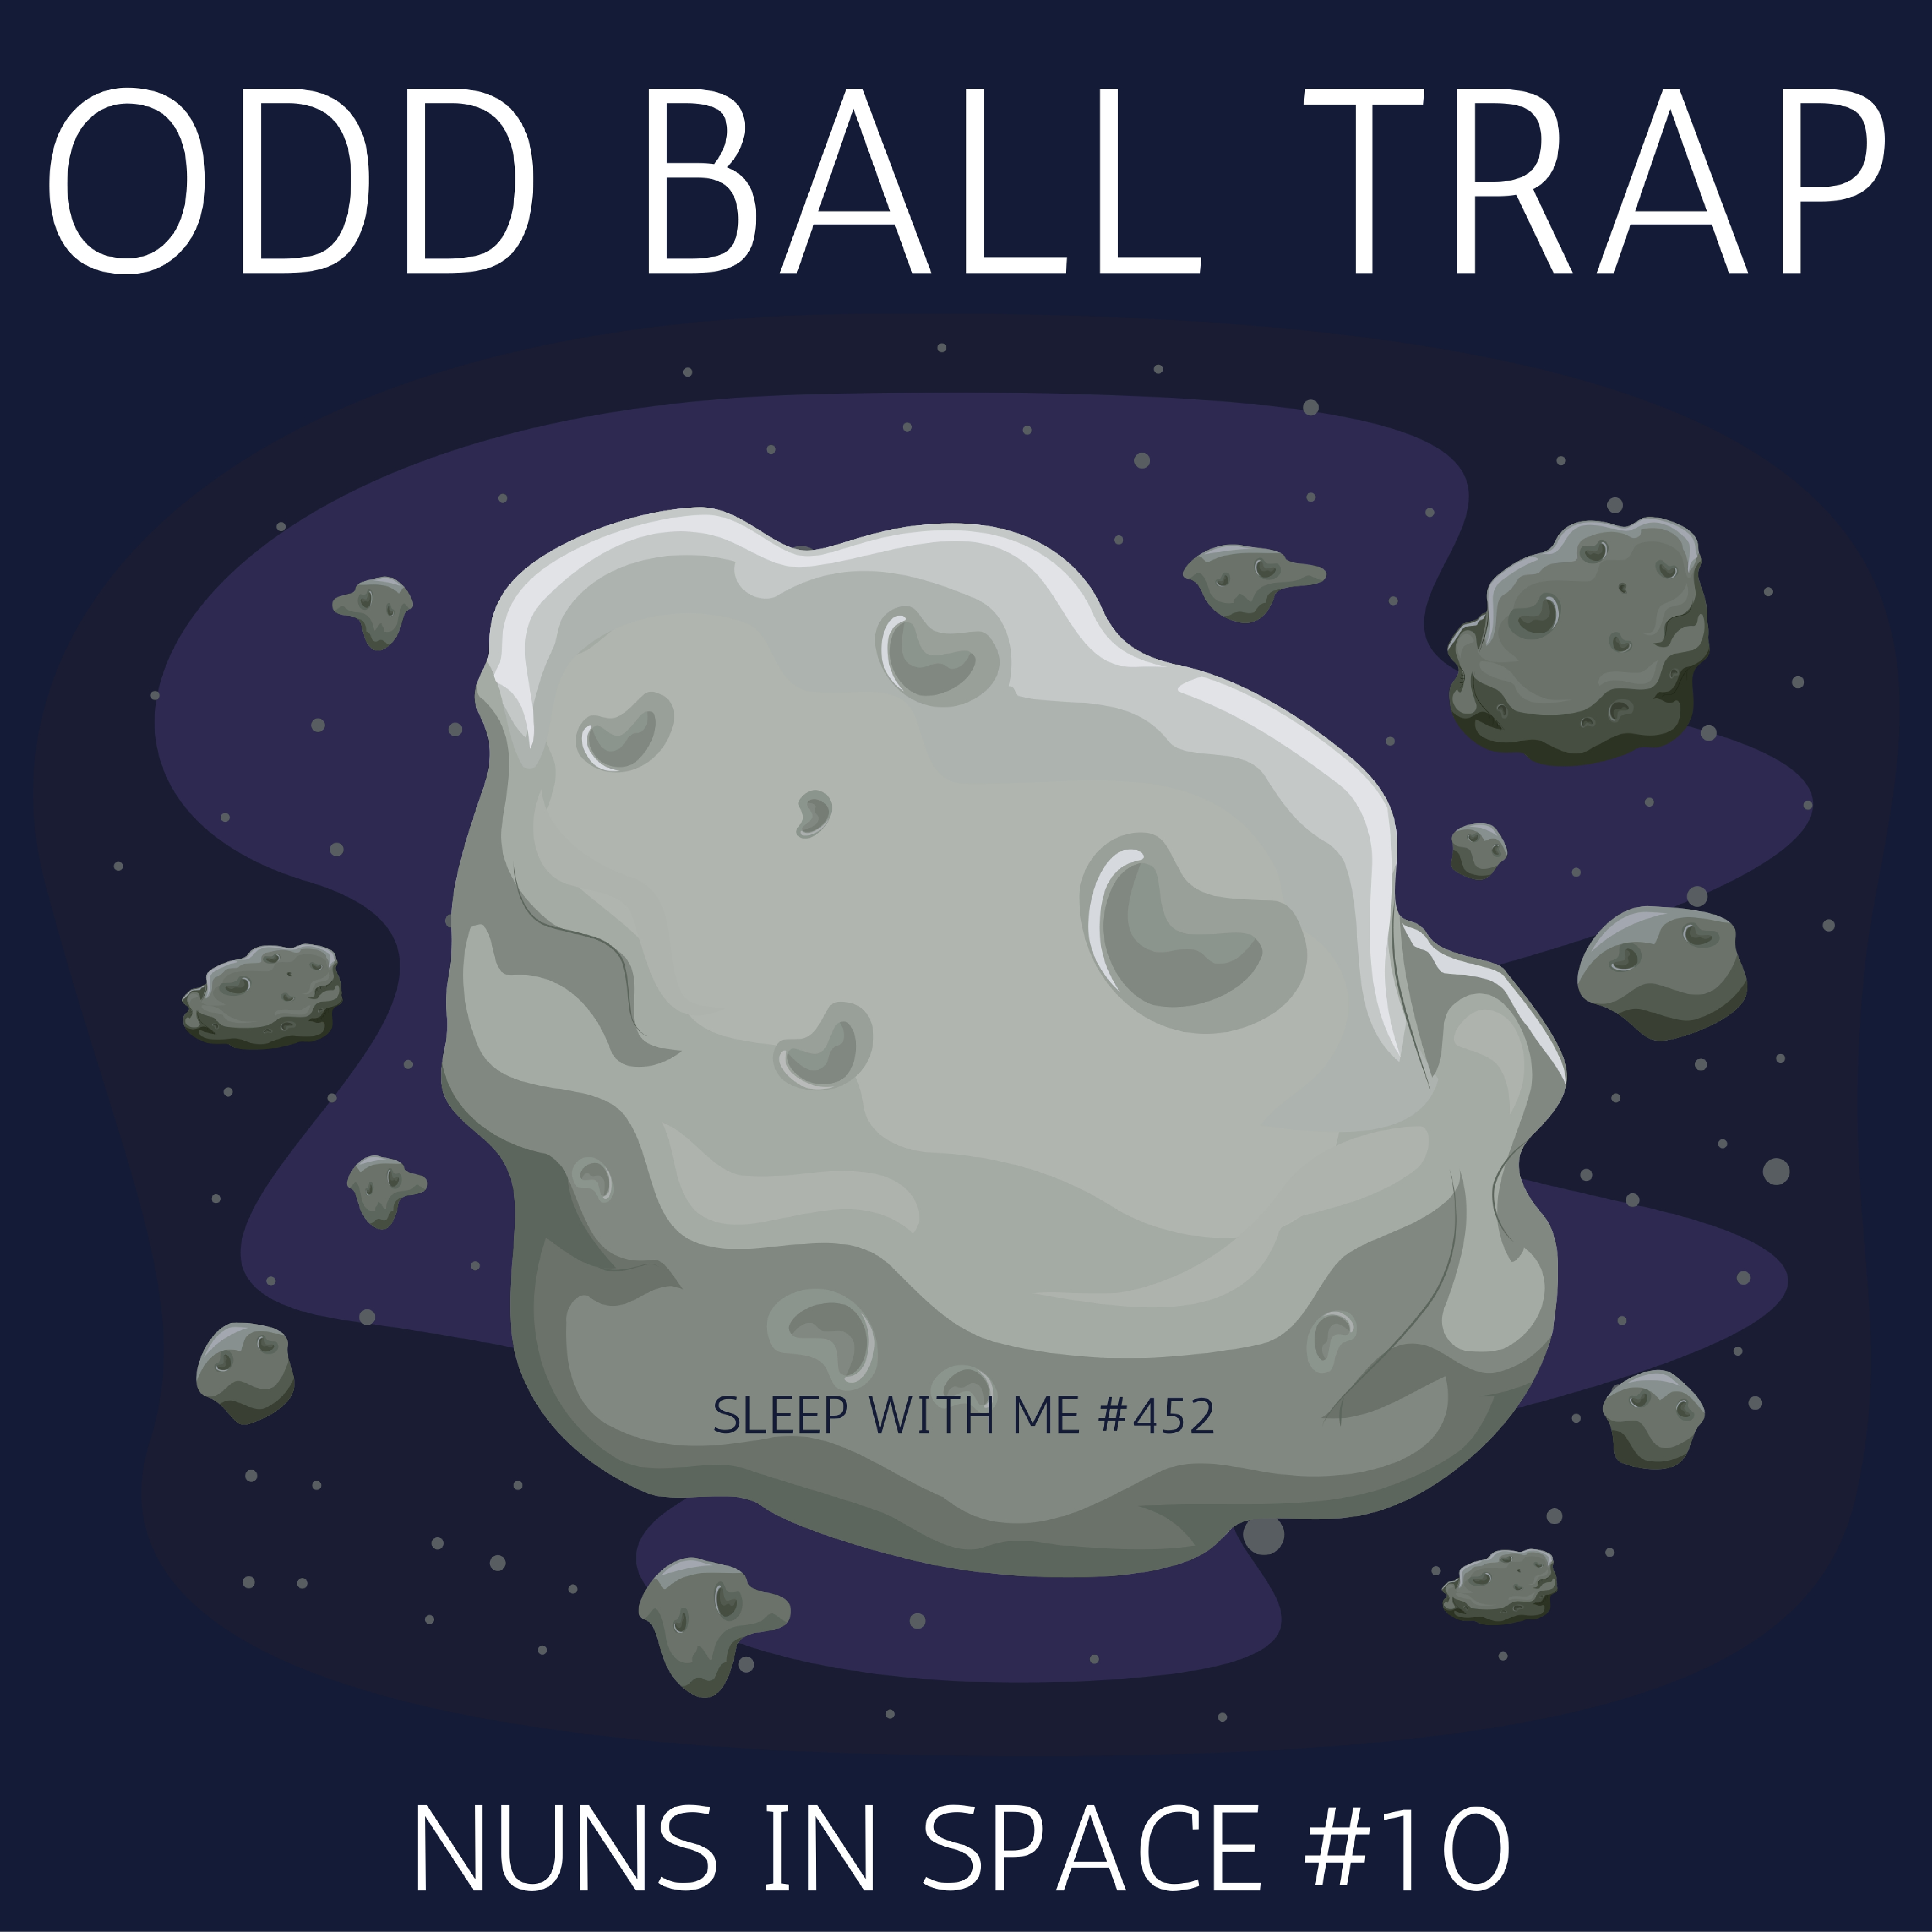 Odd Ball Trap | Nuns in Space #10 | Sleep With Me #452